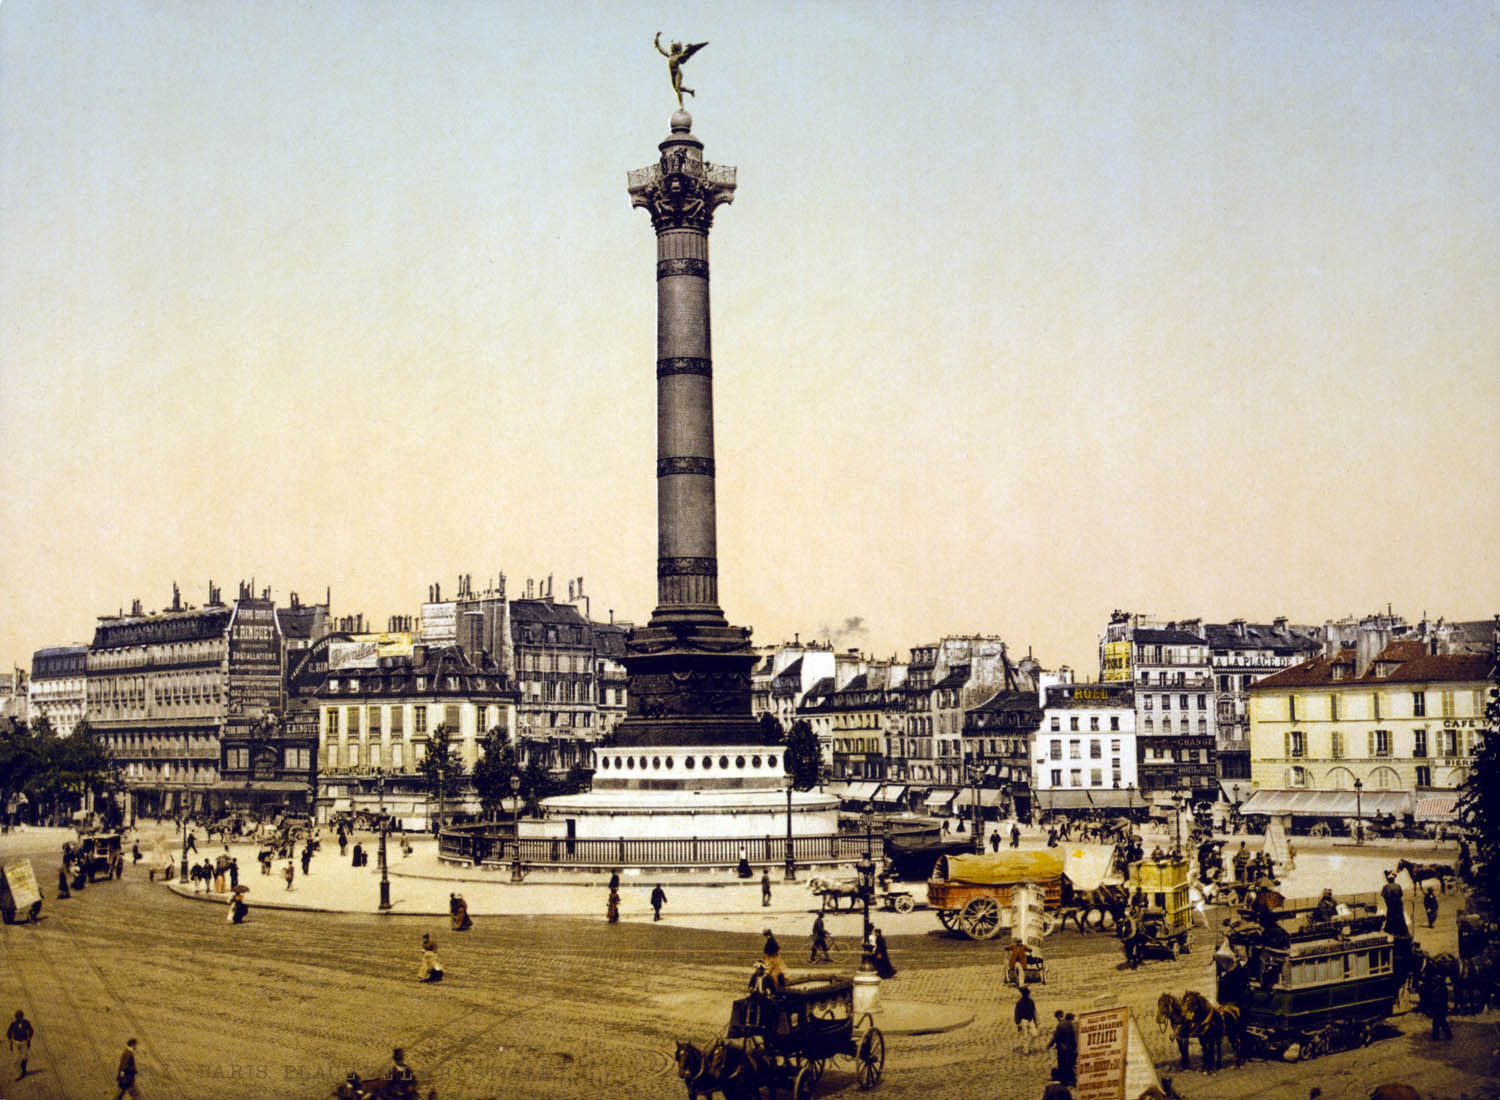 1789 place de la bastille travers les ges paris unplugged. Black Bedroom Furniture Sets. Home Design Ideas